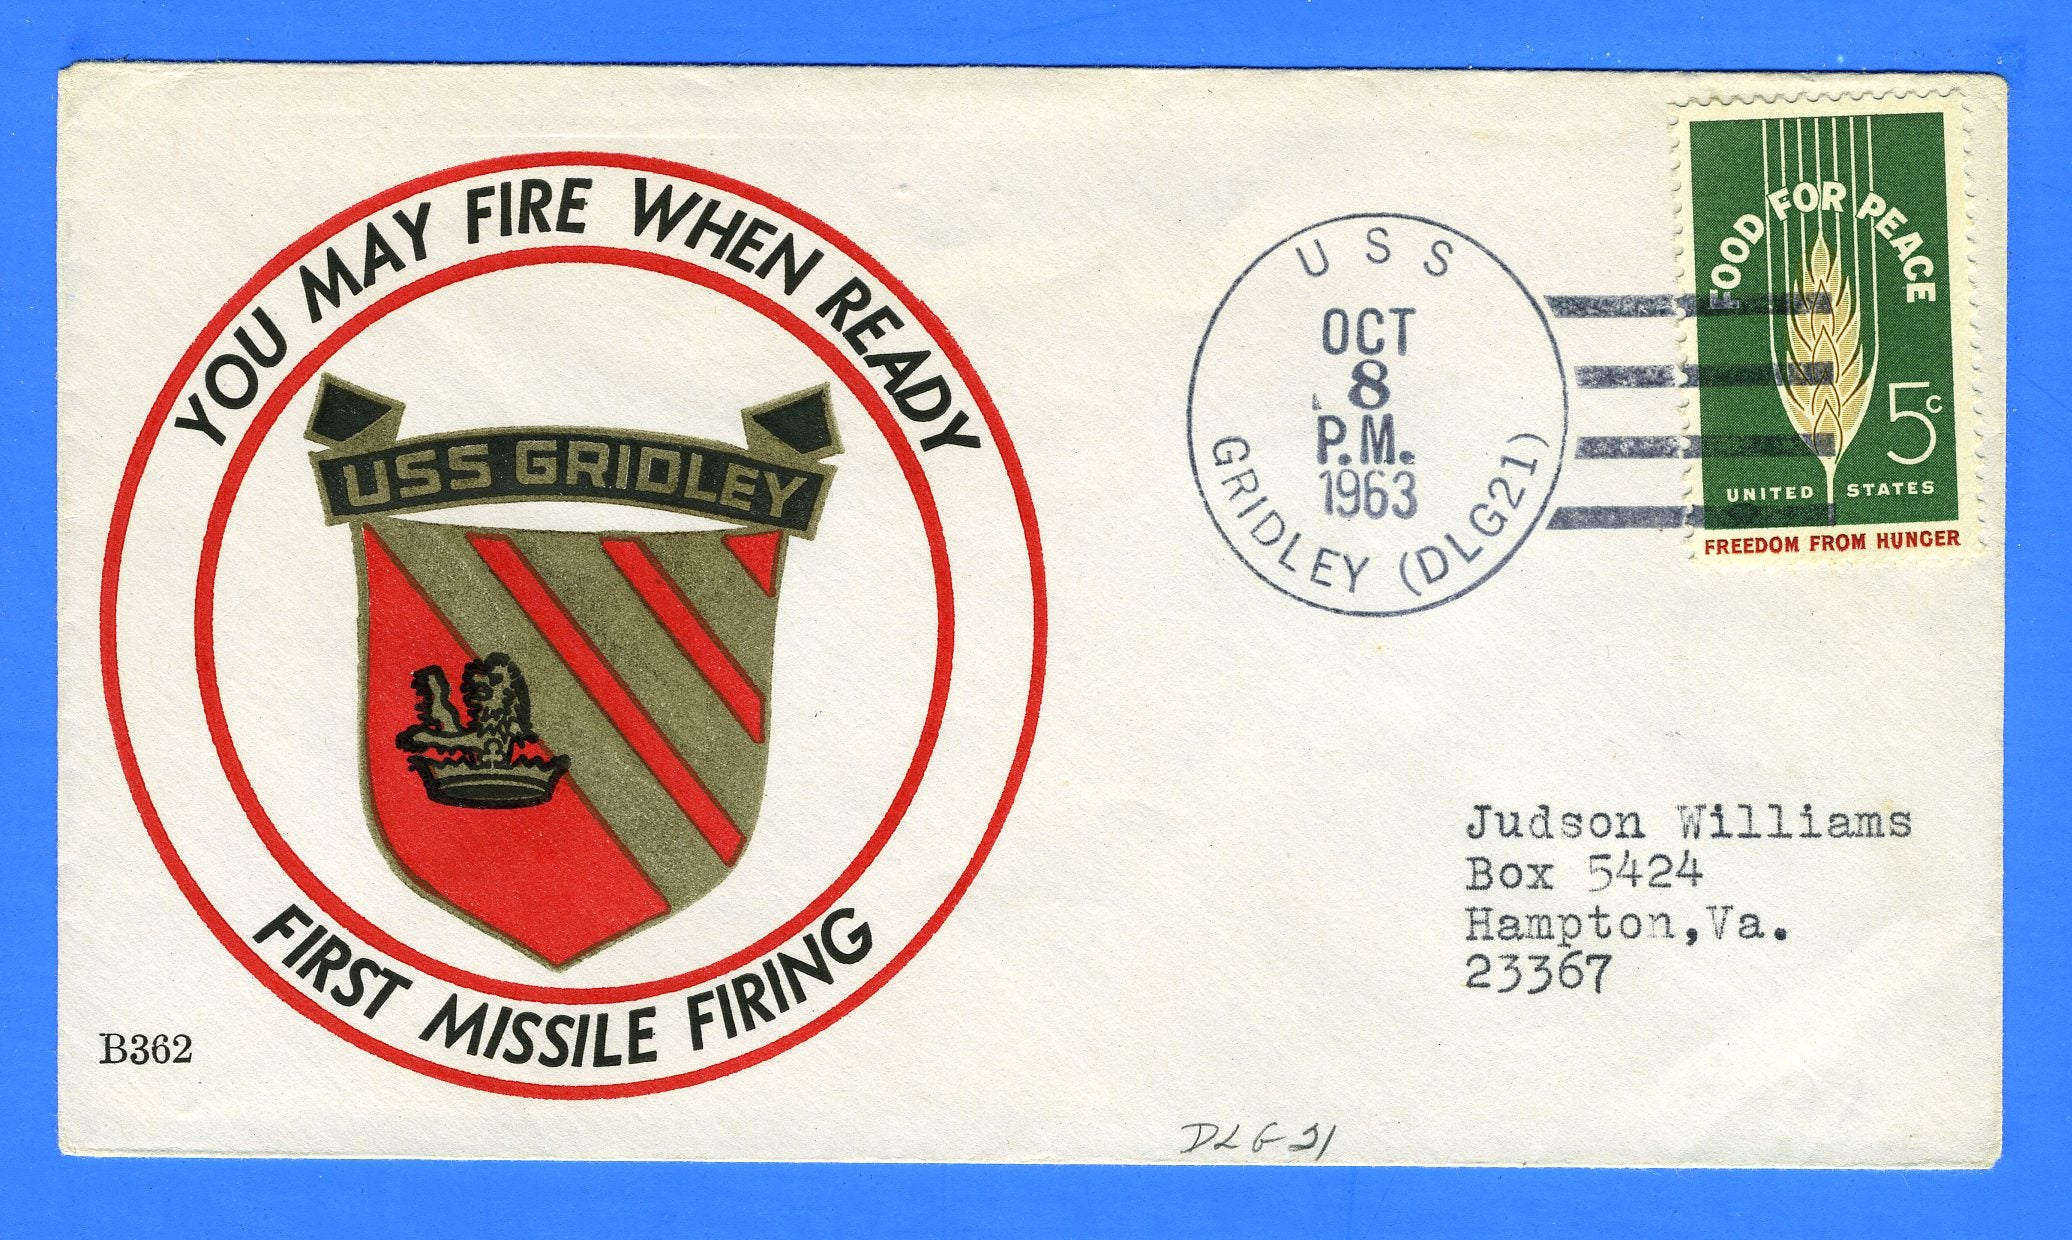 USS Gridley DLG-21 First Missile Firing October 8, 1963 - Beck Cachet 362